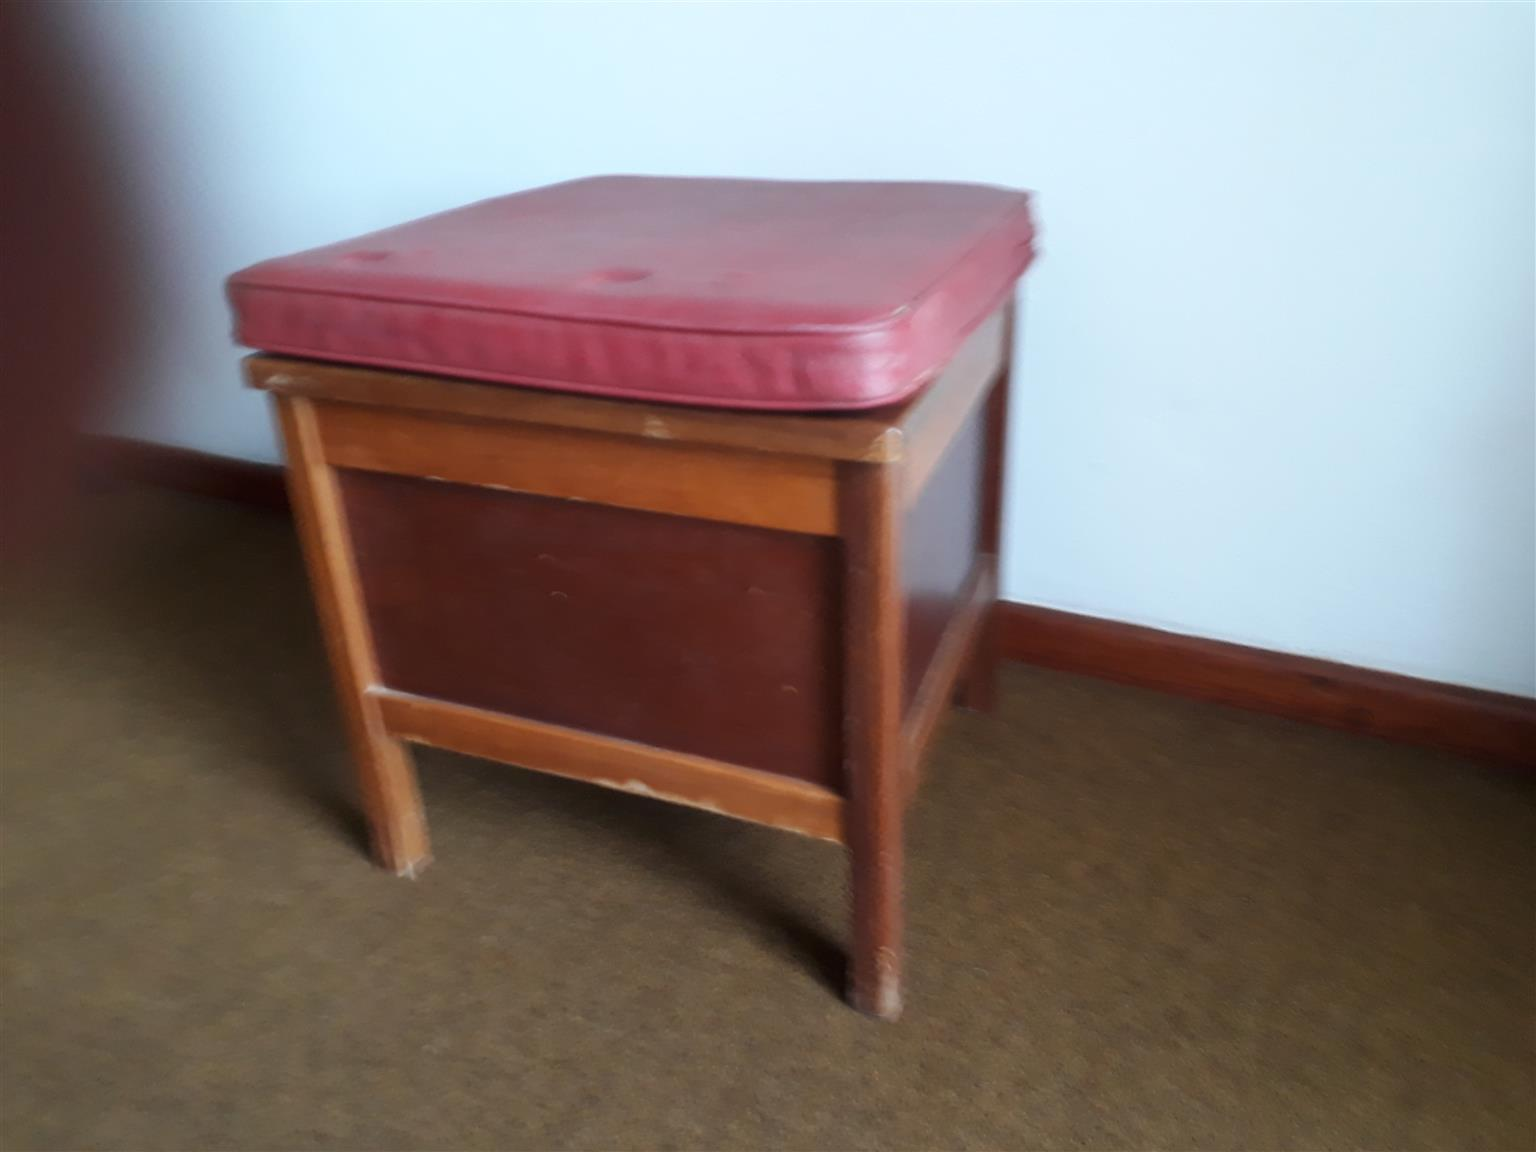 Commode in Excellent condition